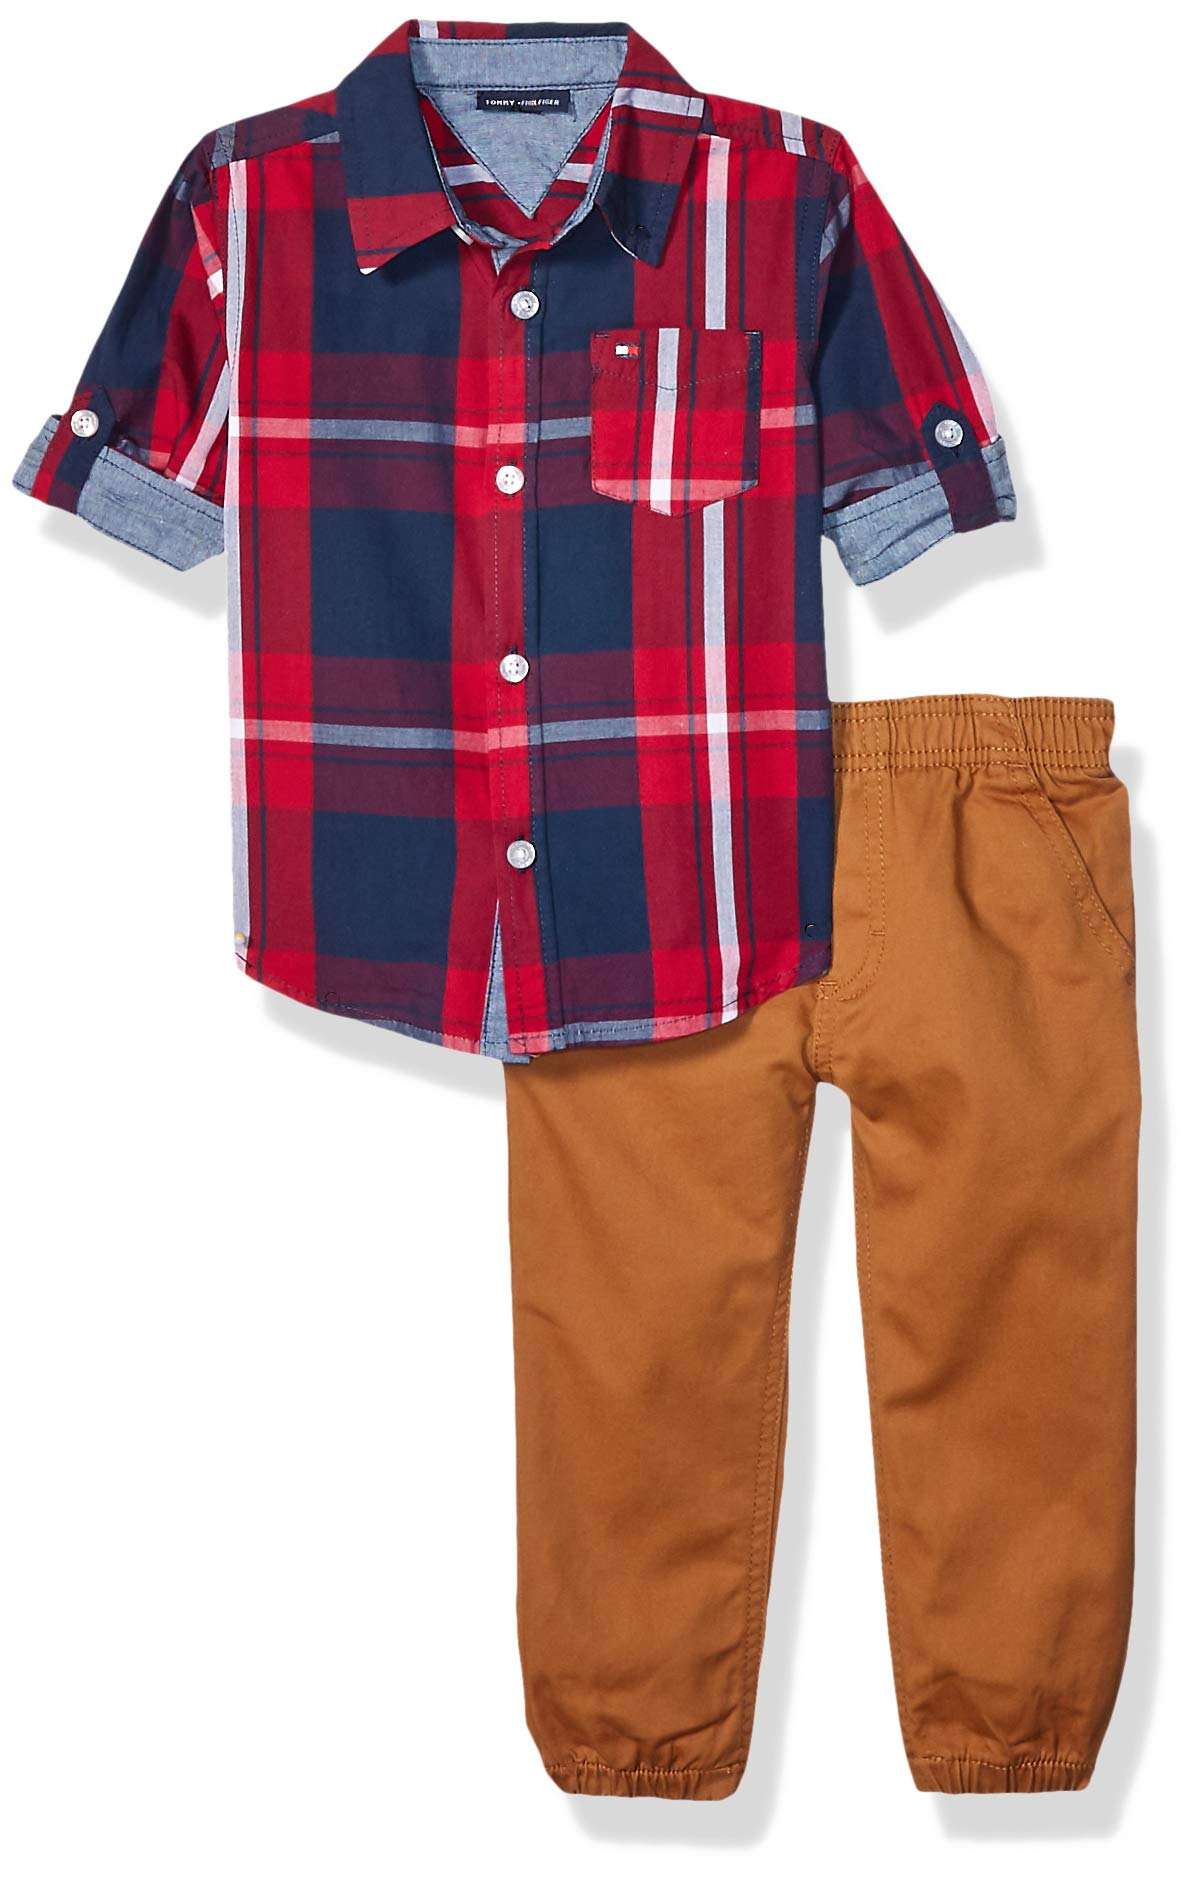 Tommy Hilfiger Boys' Toddler 2 Pieces Shirt Pants Set